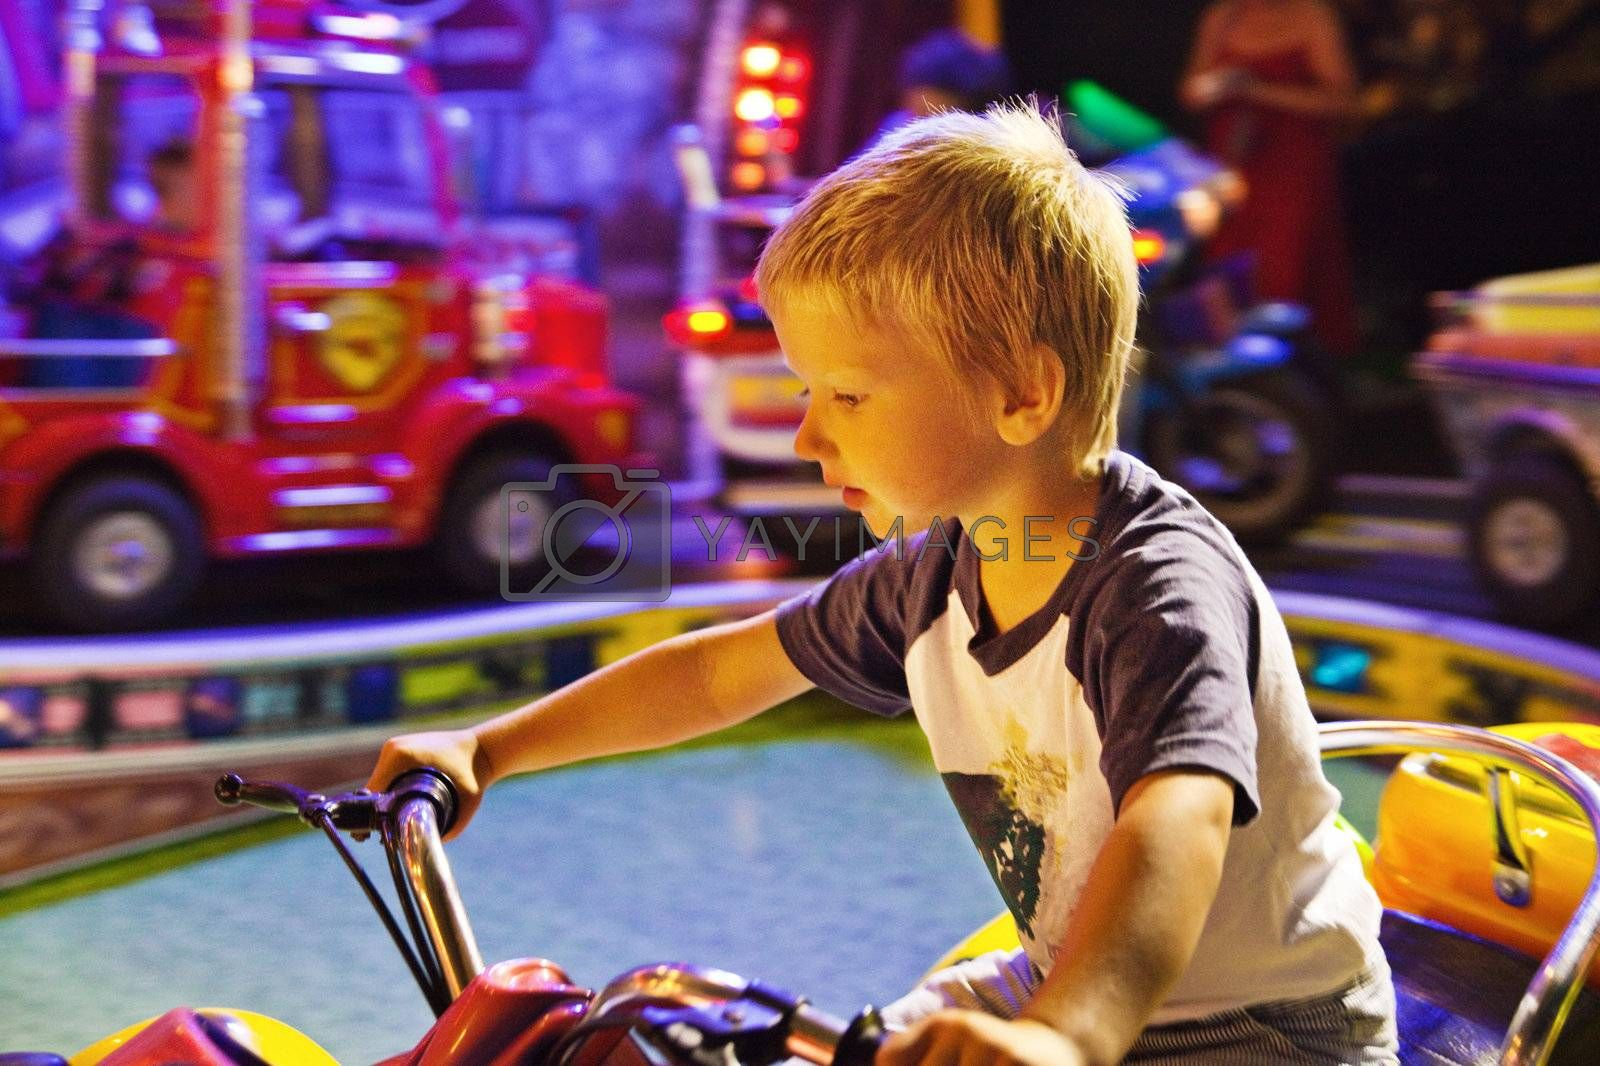 Little boy riding toy bicycle in amusement park